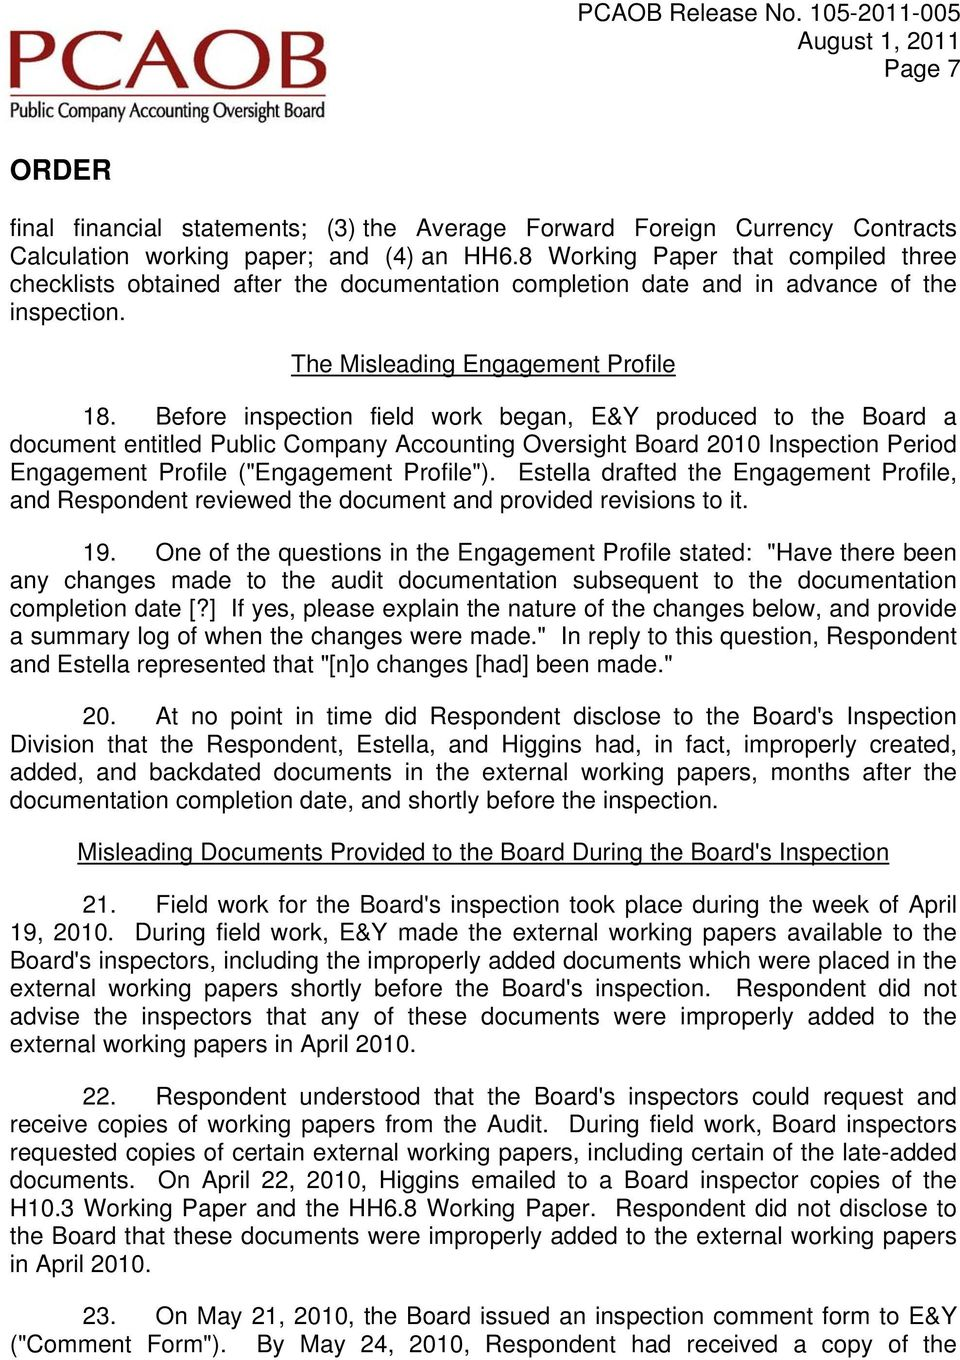 "Before inspection field work began, E&Y produced to the Board a document entitled Public Company Accounting Oversight Board 2010 Inspection Period Engagement Profile (""Engagement Profile""."